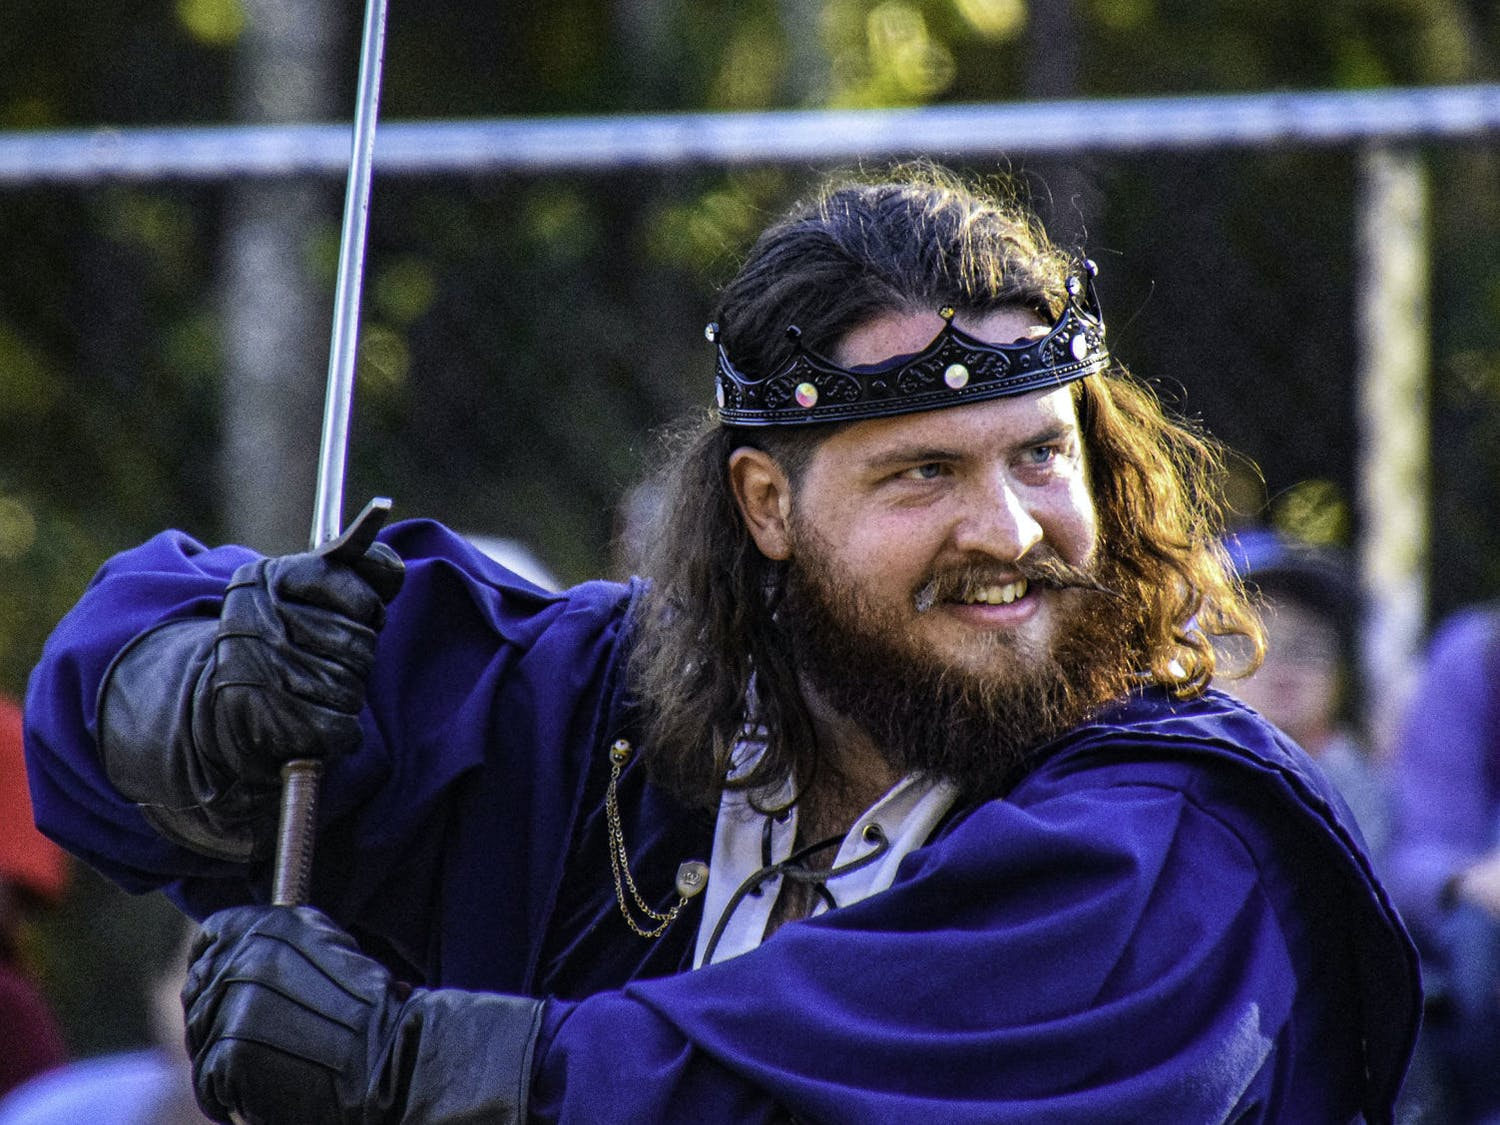 Cody Ward, a 29-year-old actor with volunteer acting troupe Thieves Guilde, brandishes a sword to play-fight an opponent during a life-sized game of chess at the Hoggetowne Medieval Faire.